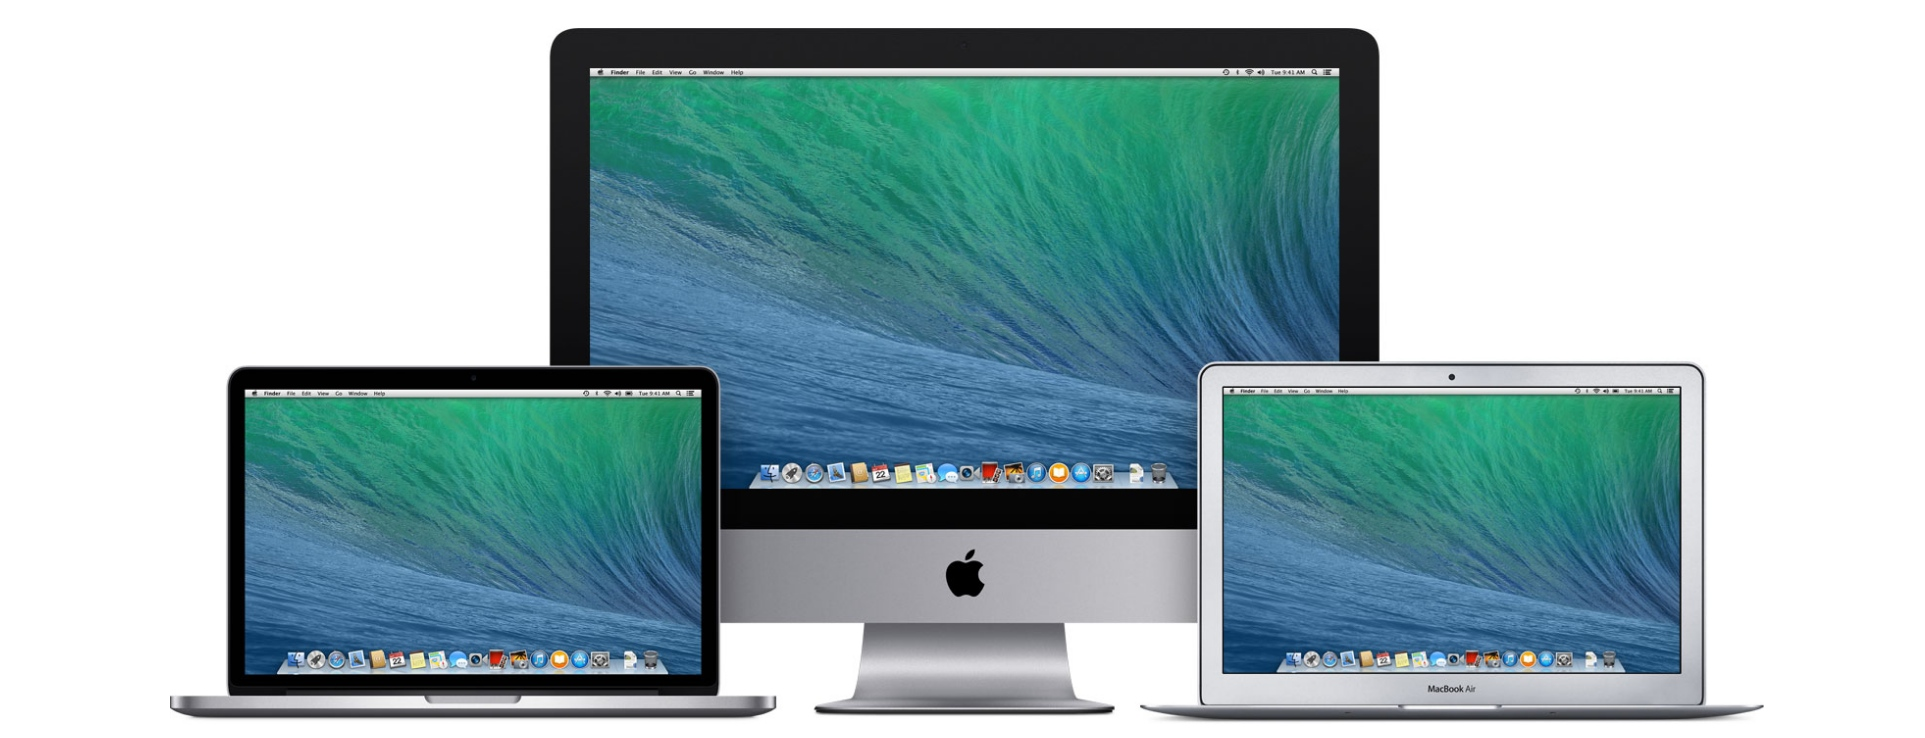 Apple Launches OS X Beta Seed Program